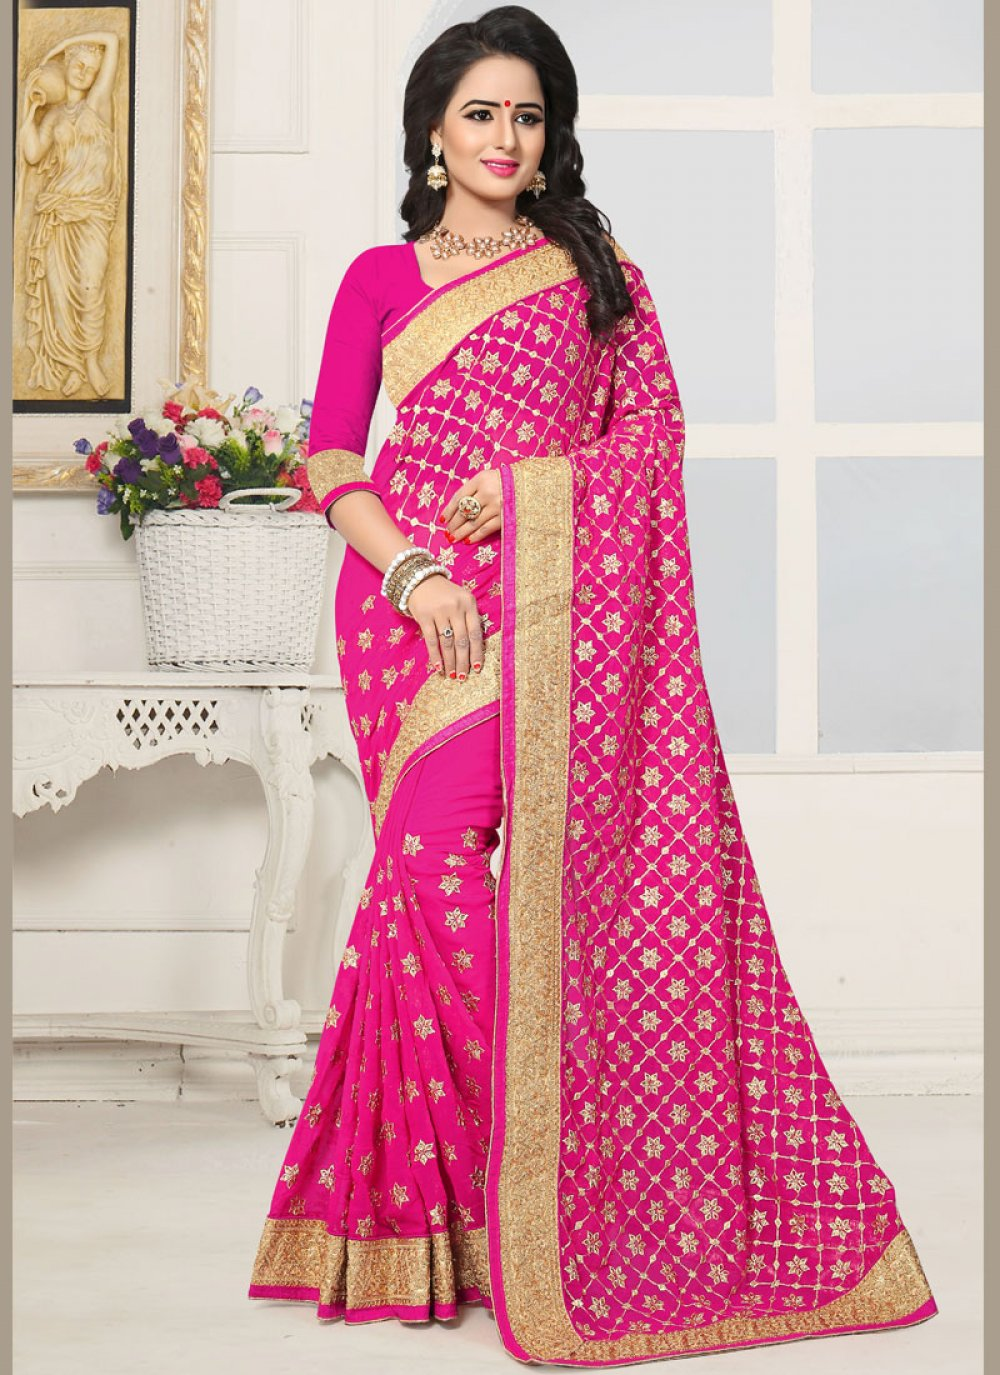 Patch Border Work Hot Pink Faux Georgette Classic Designer Saree